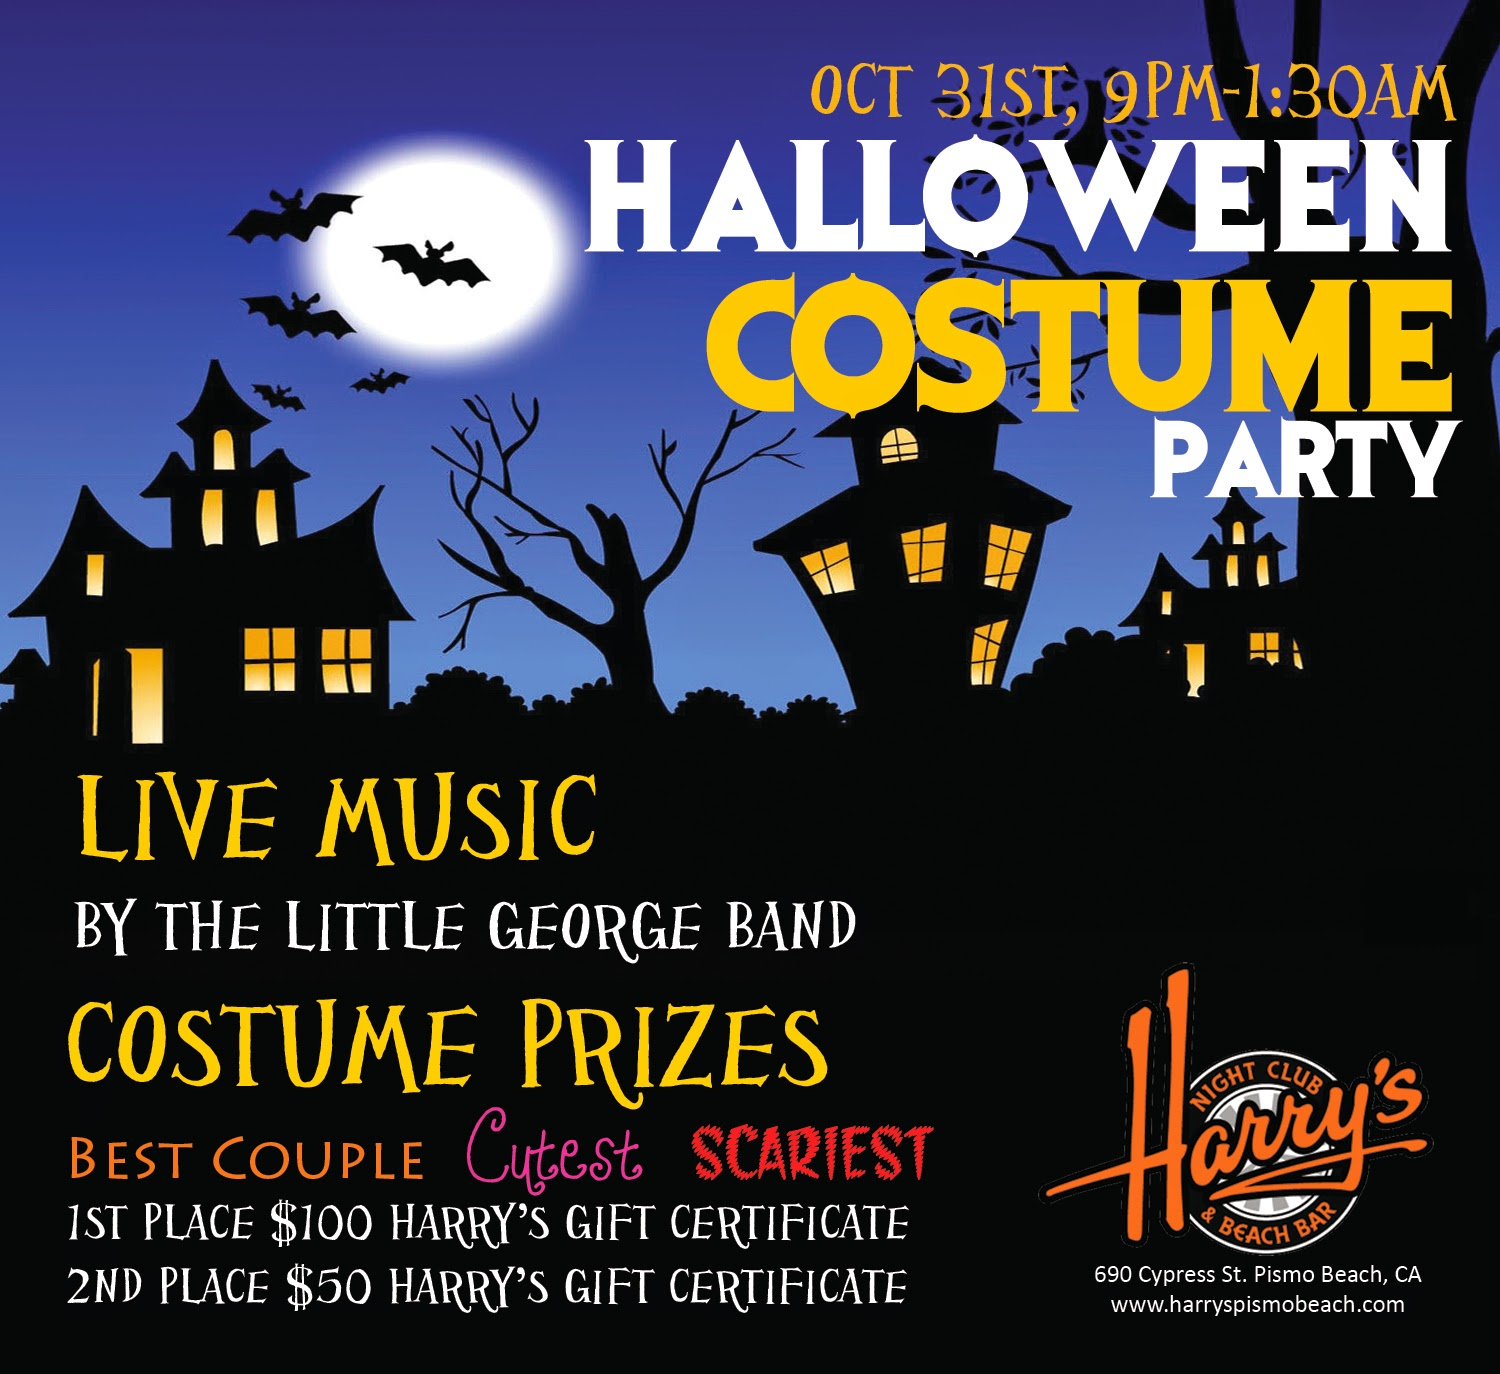 harry's night club & beach bar: join us for our annual halloween